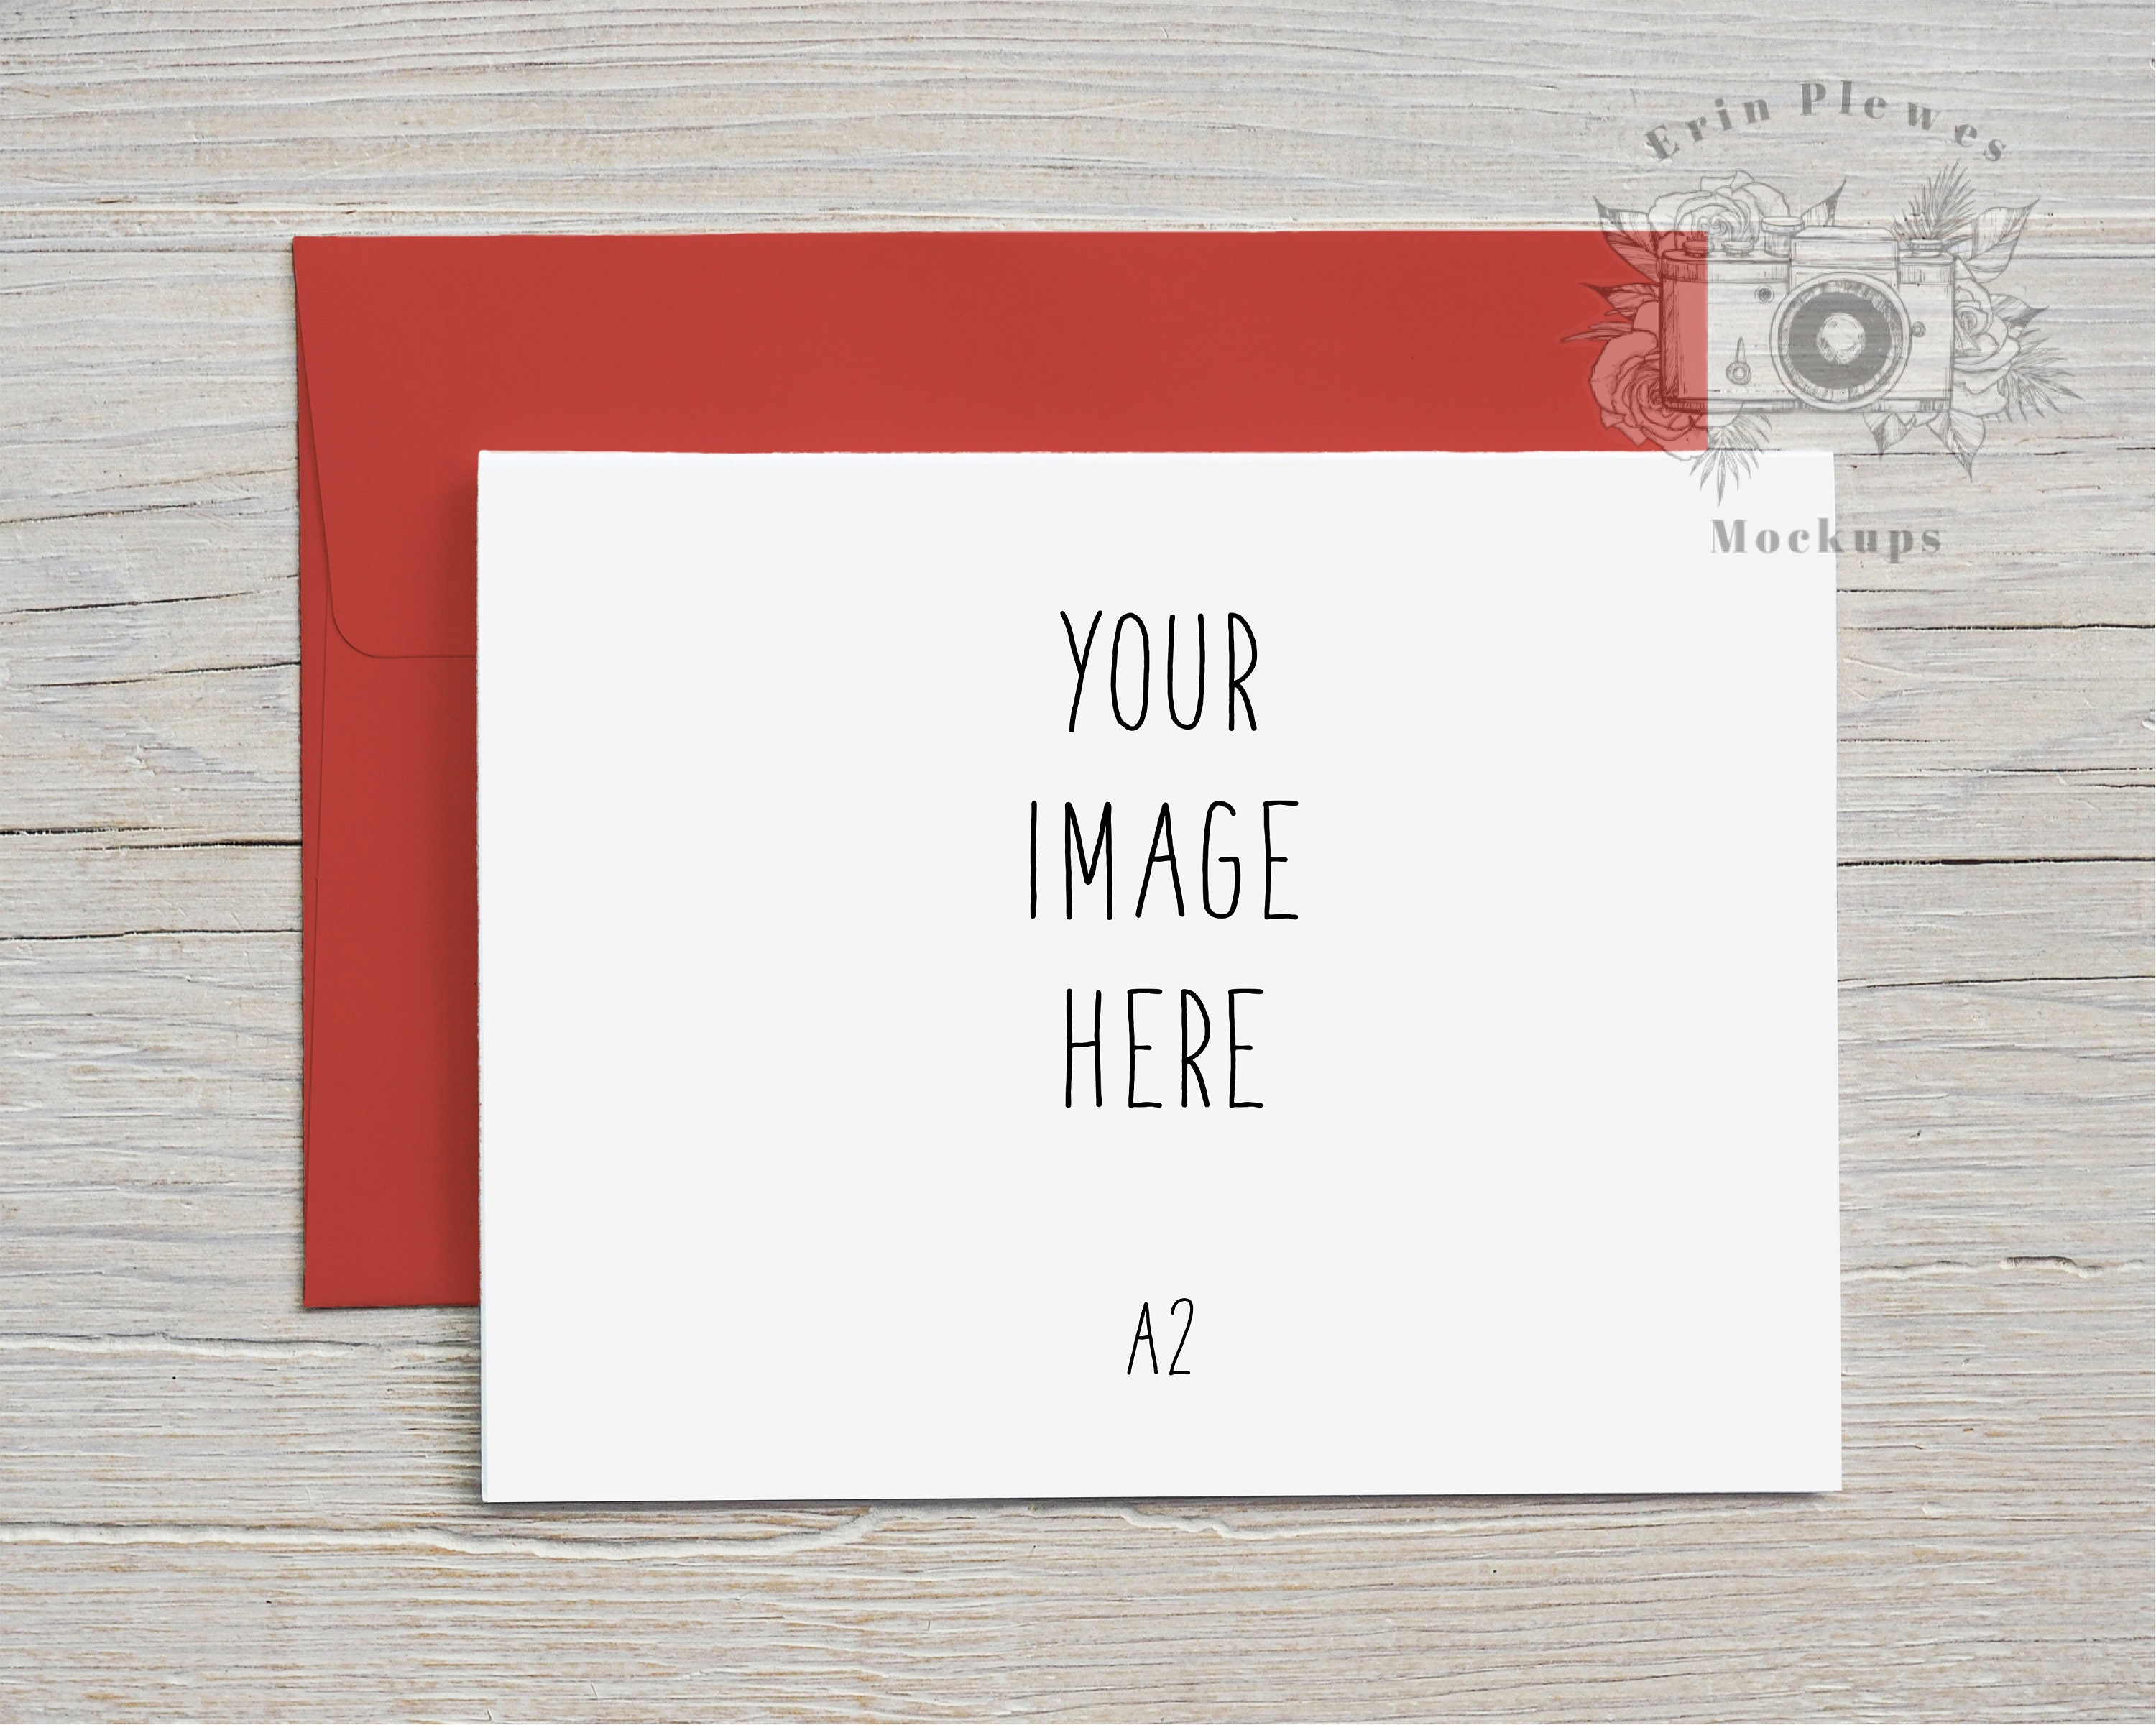 A21 Card Mockup Red Envelope, Greeting Card Mock-up Landscape, Christmas  Card Lifestyle Photo Template, Jpeg Instant Digital Download Regarding A2 Card Template